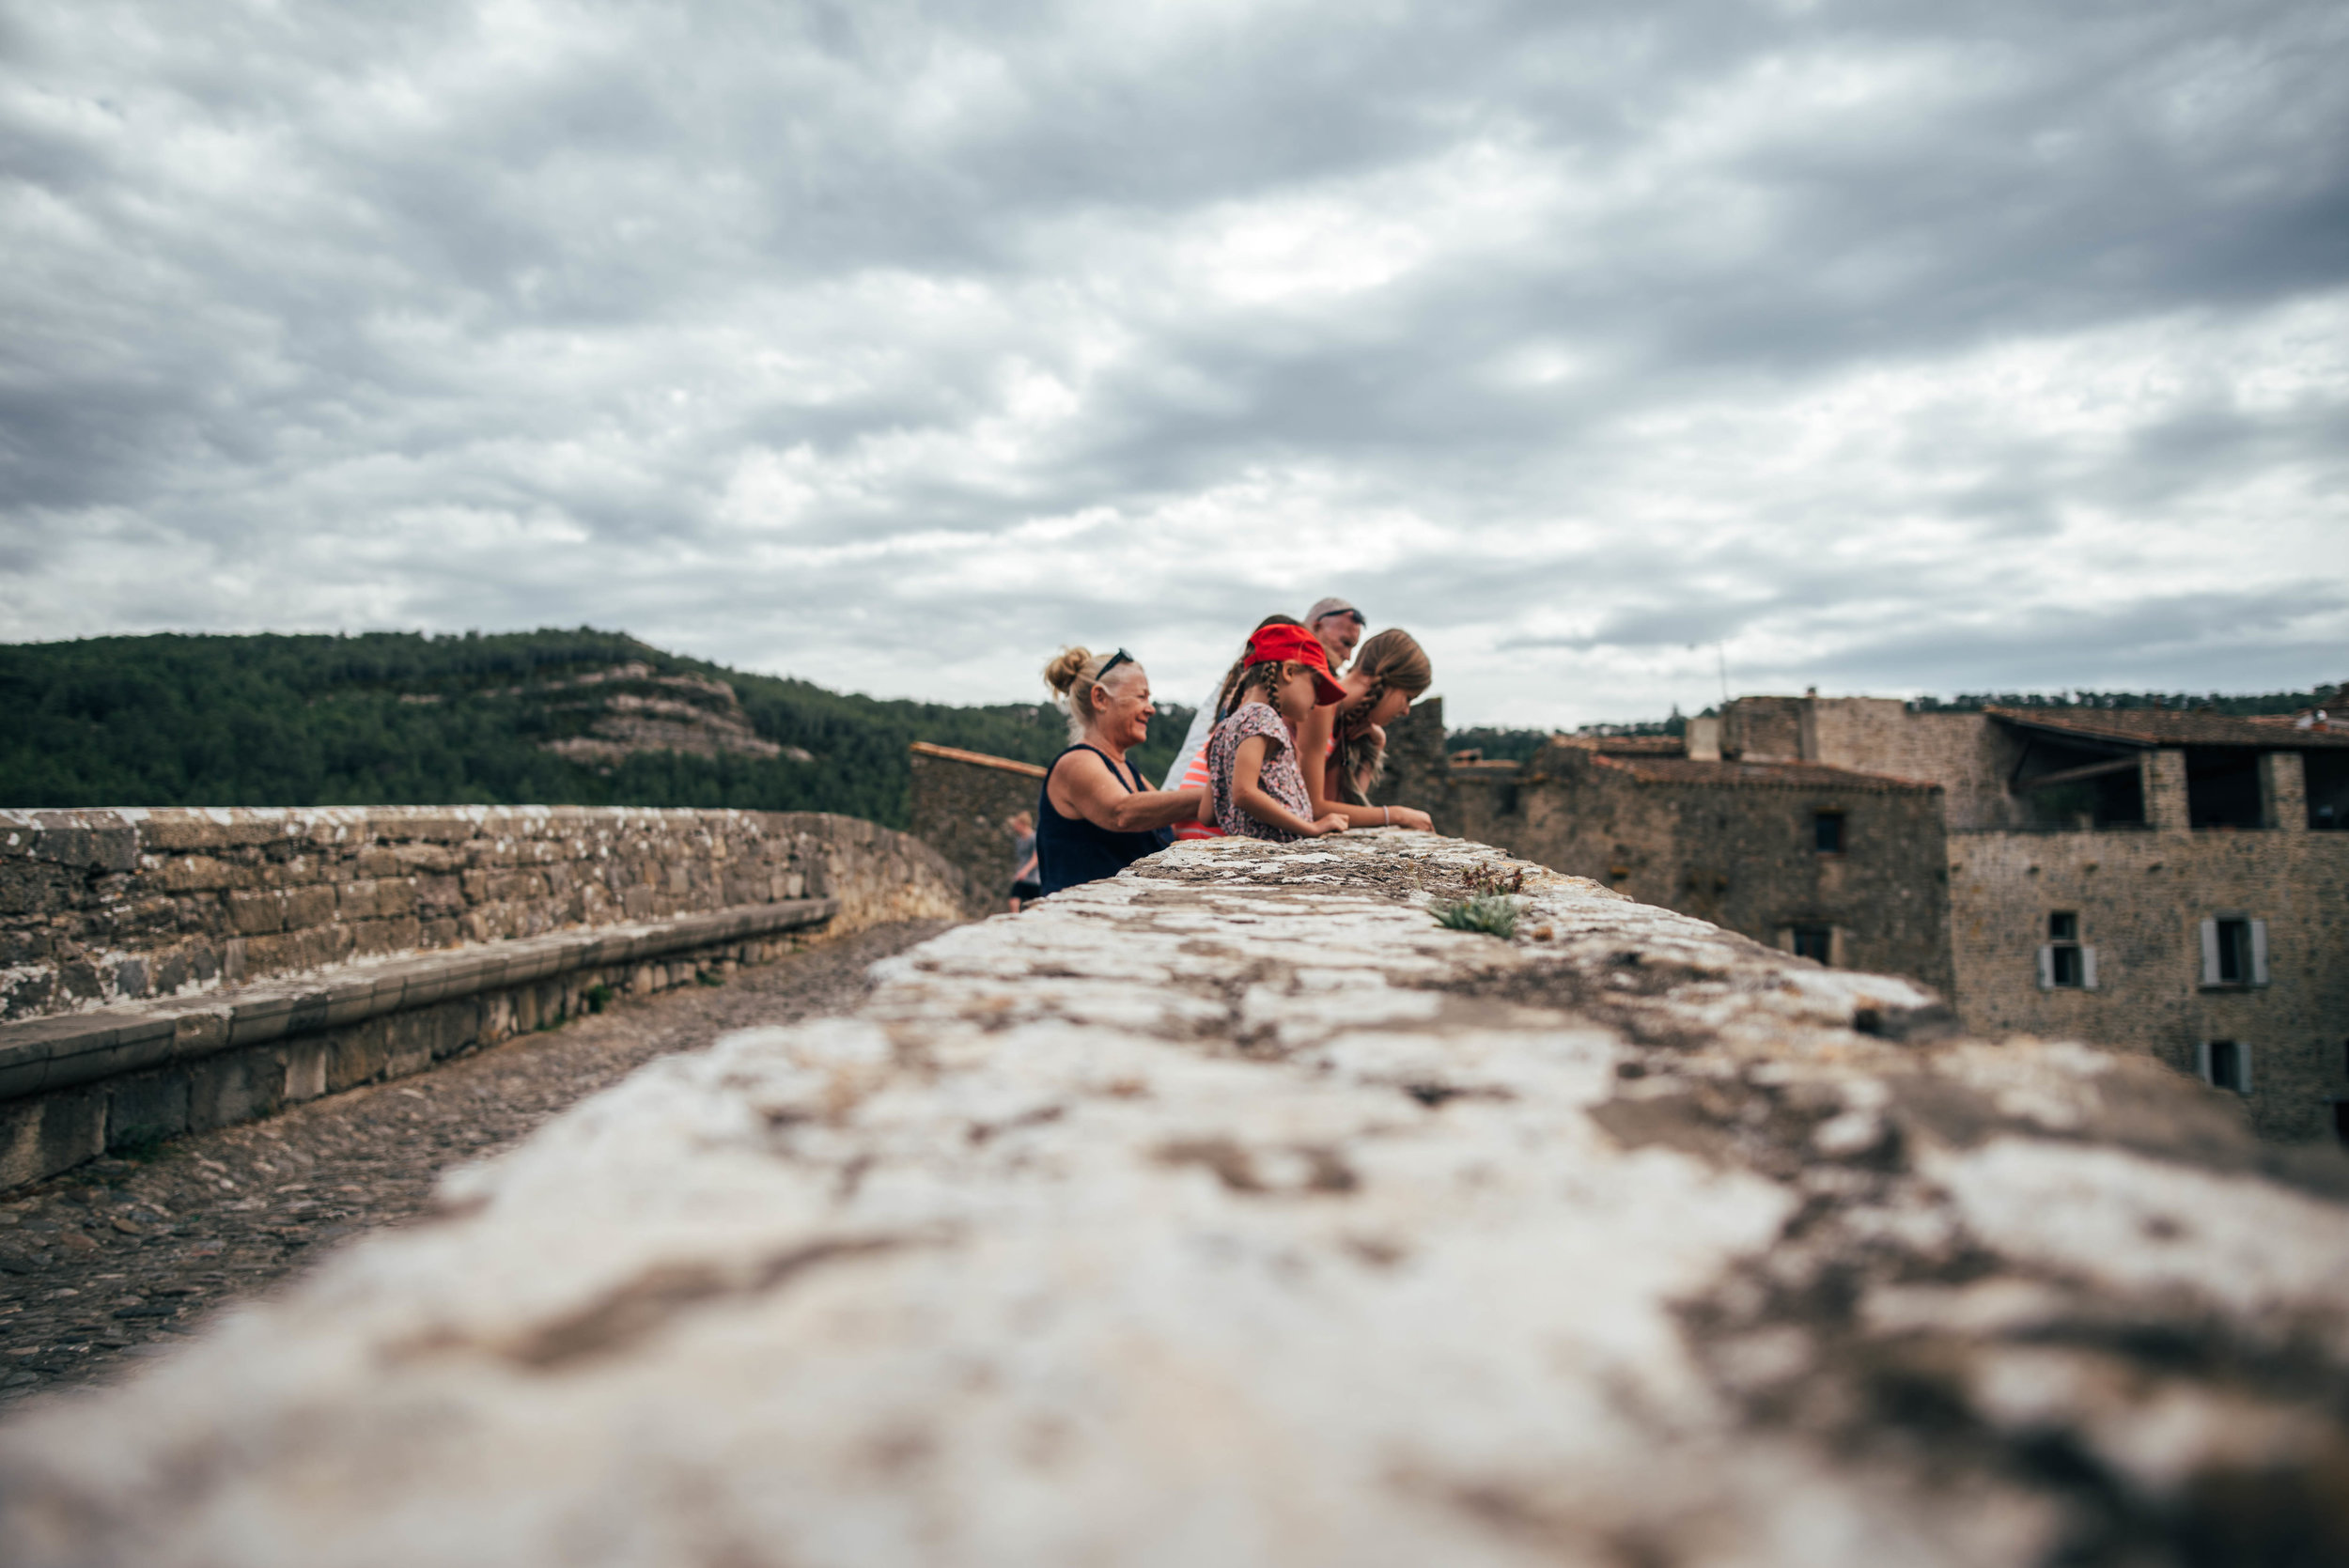 Family stand on bridge over river at Lagrasse France Essex UK Documentary Portrait Photographer